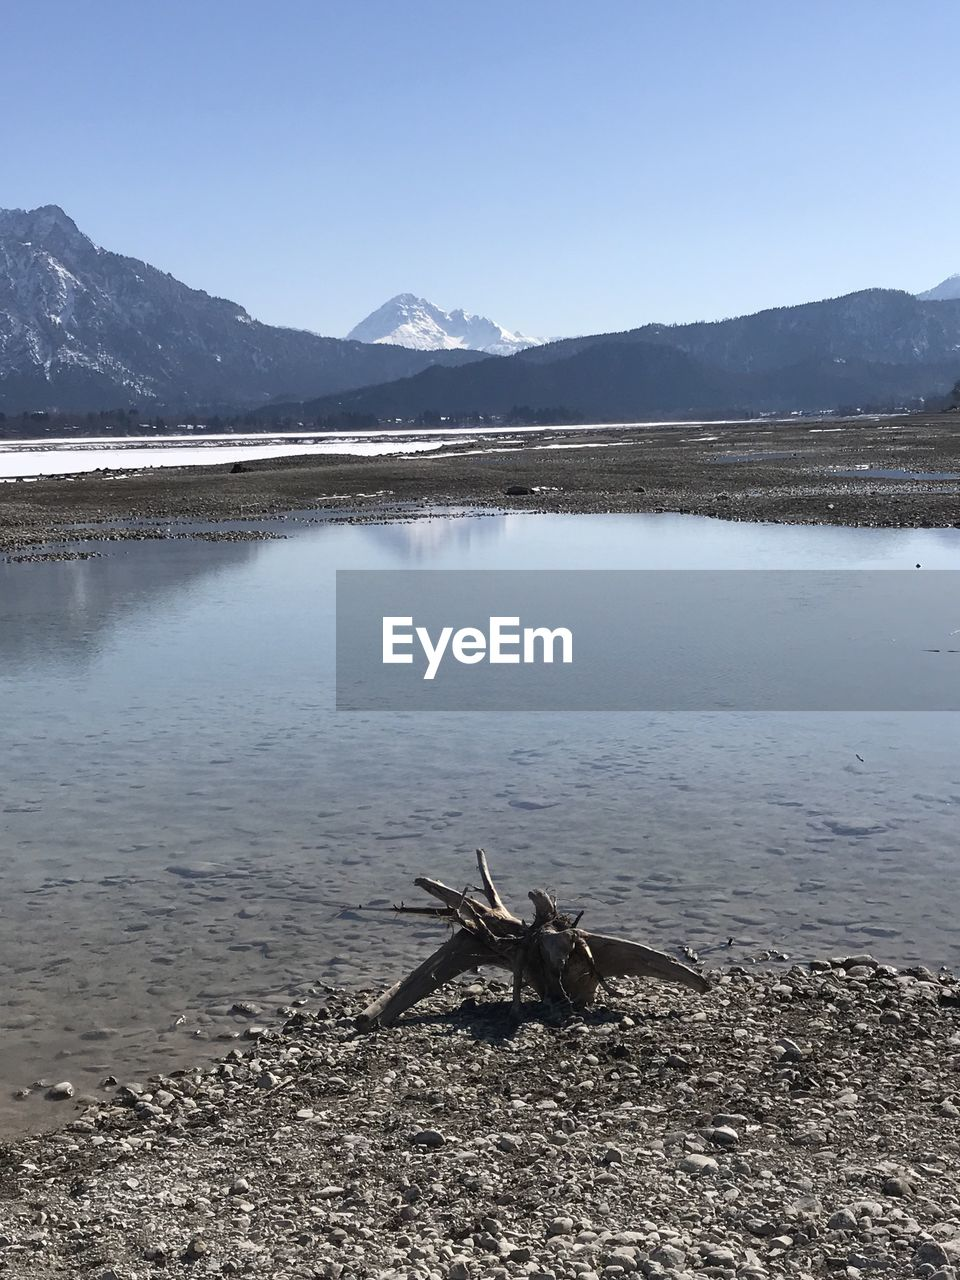 water, mountain, tranquil scene, lake, sky, scenics - nature, beauty in nature, nature, tranquility, day, no people, non-urban scene, one animal, animal themes, mountain range, animal, animal wildlife, animals in the wild, outdoors, driftwood